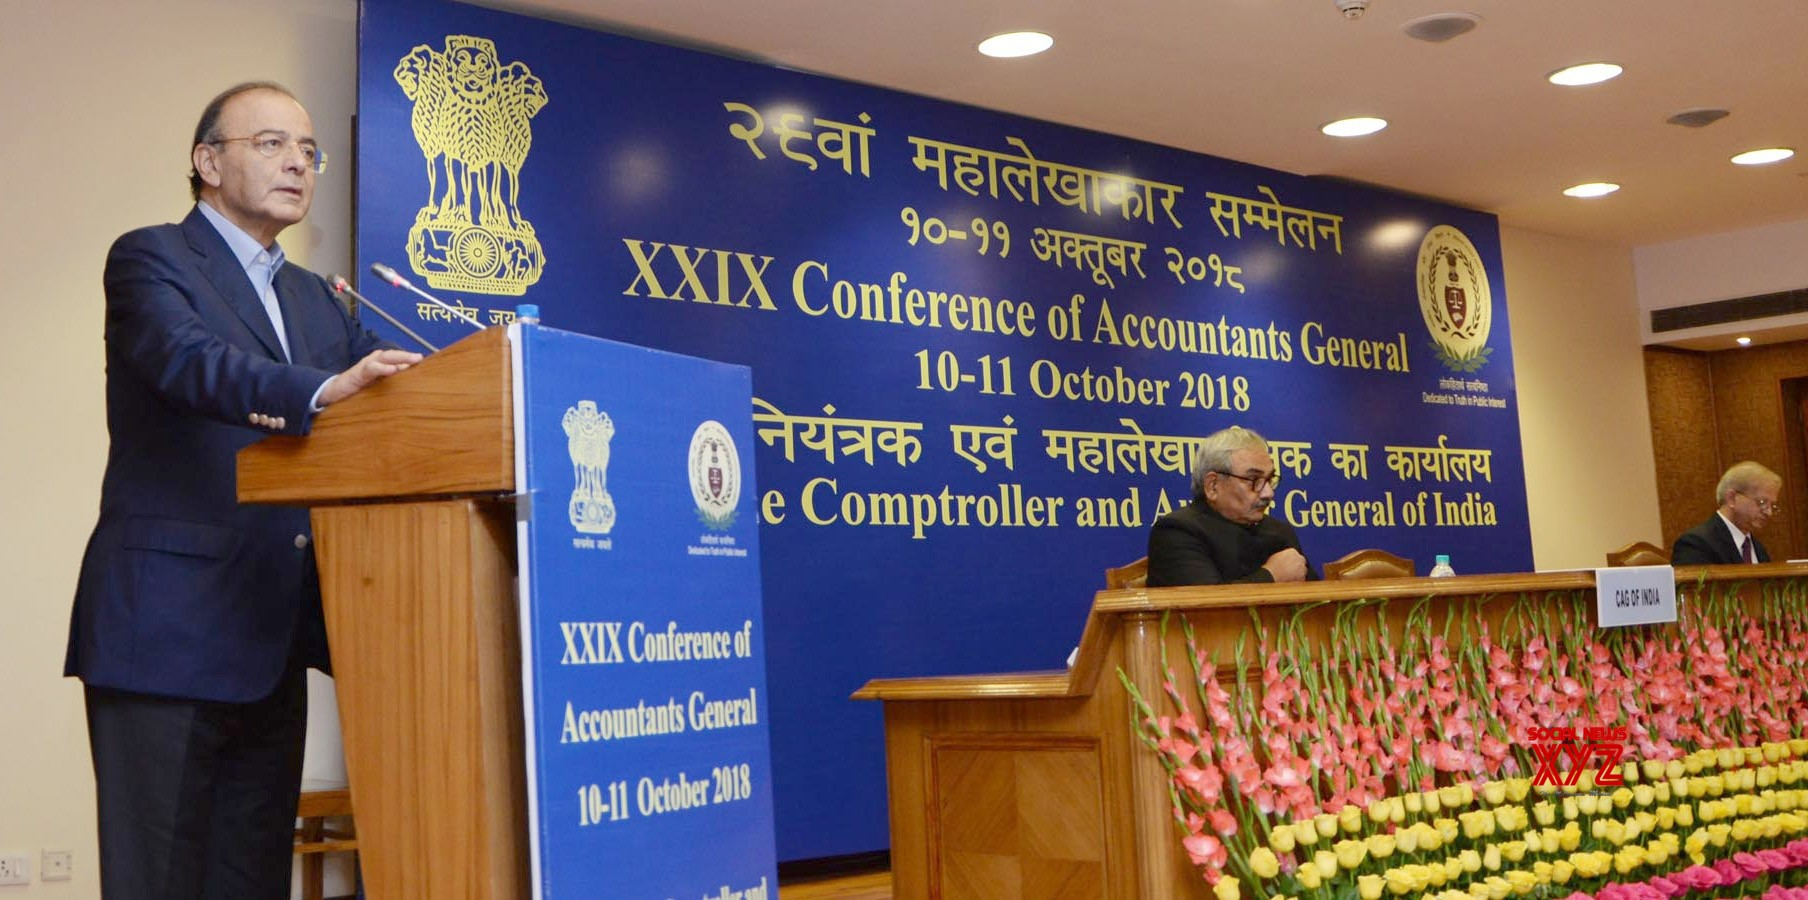 Quality of public discourse big challenge in India: Jaitley